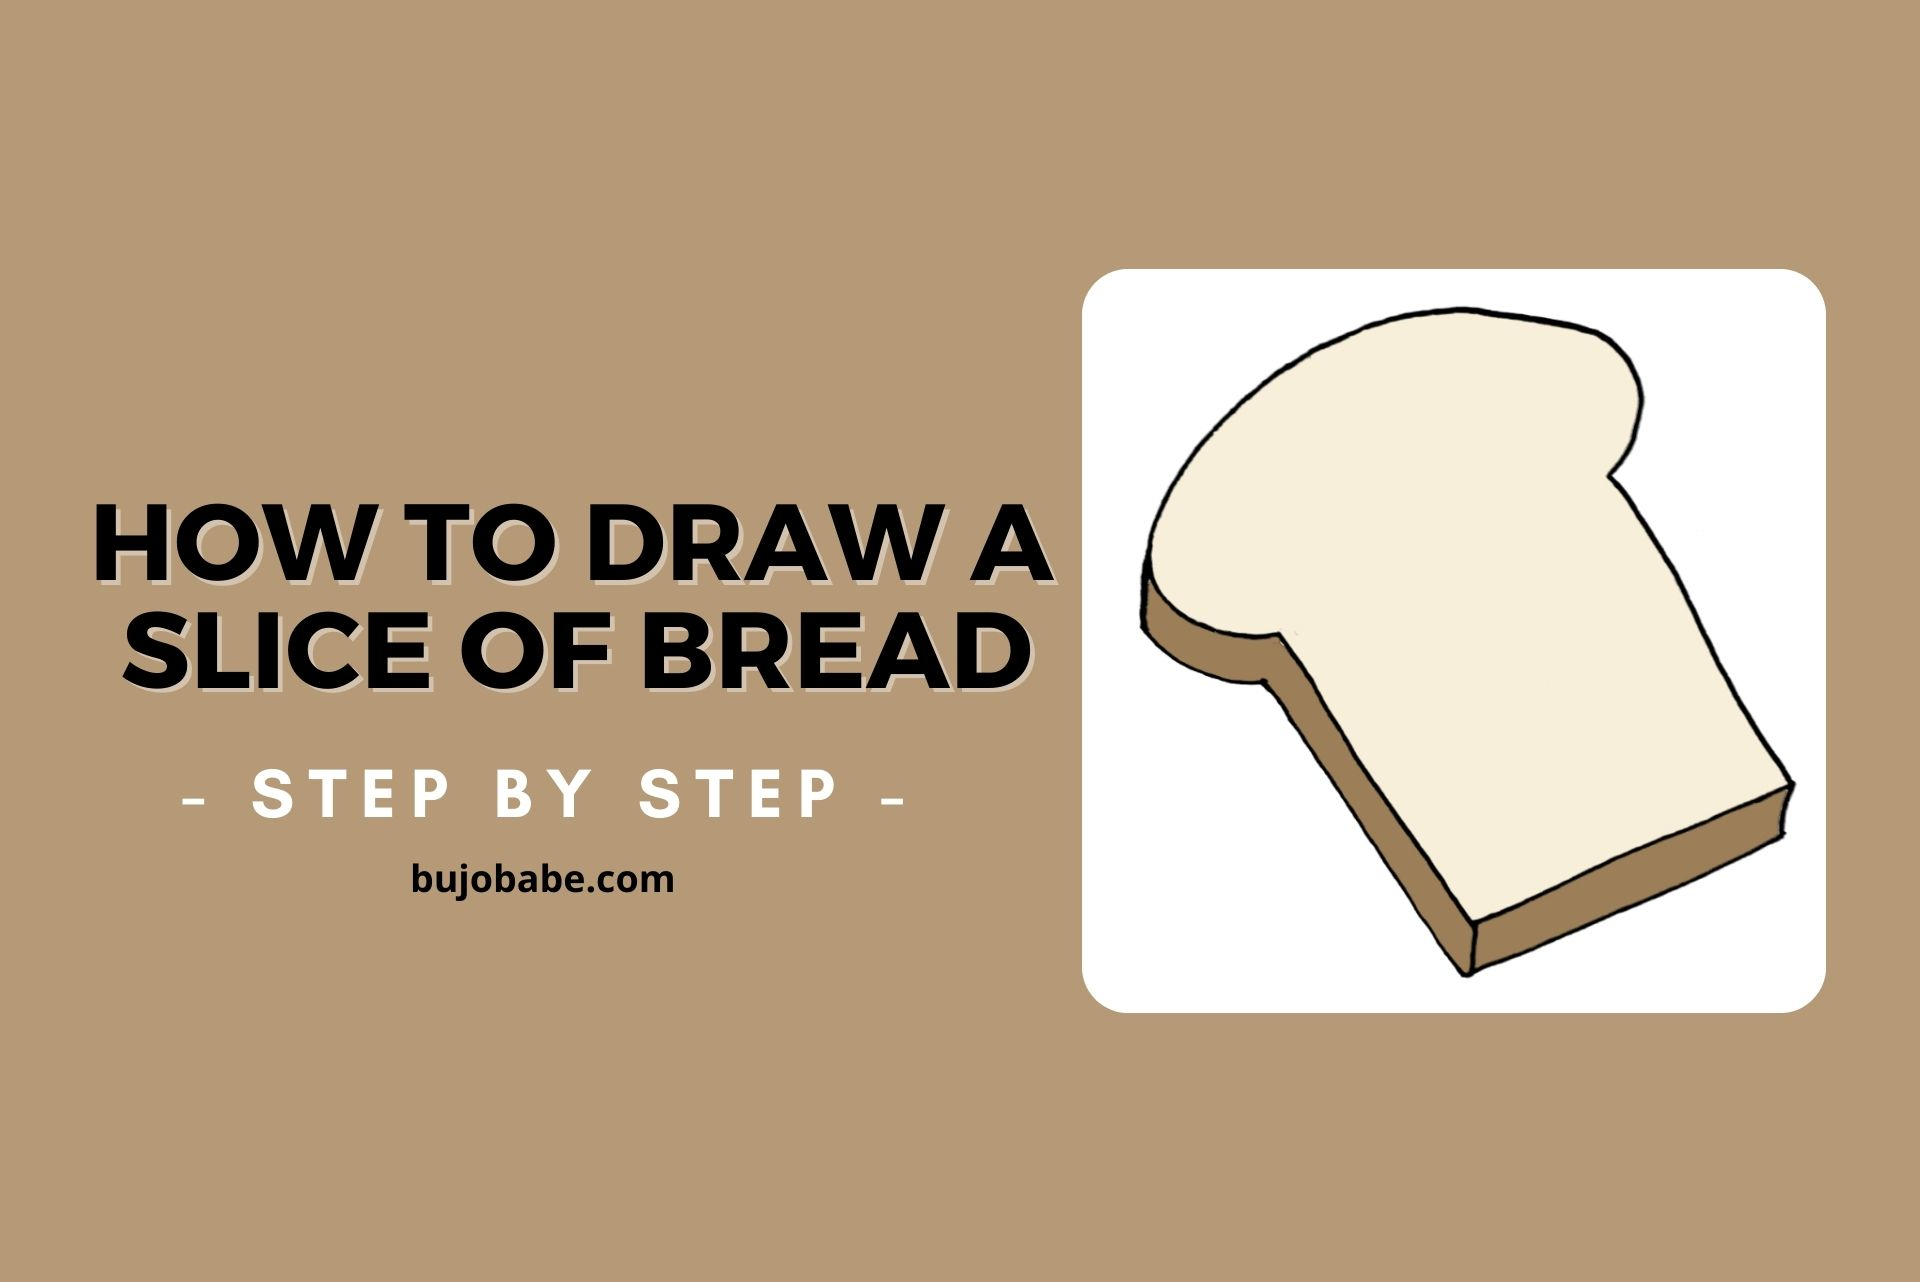 how to draw a slice of bread